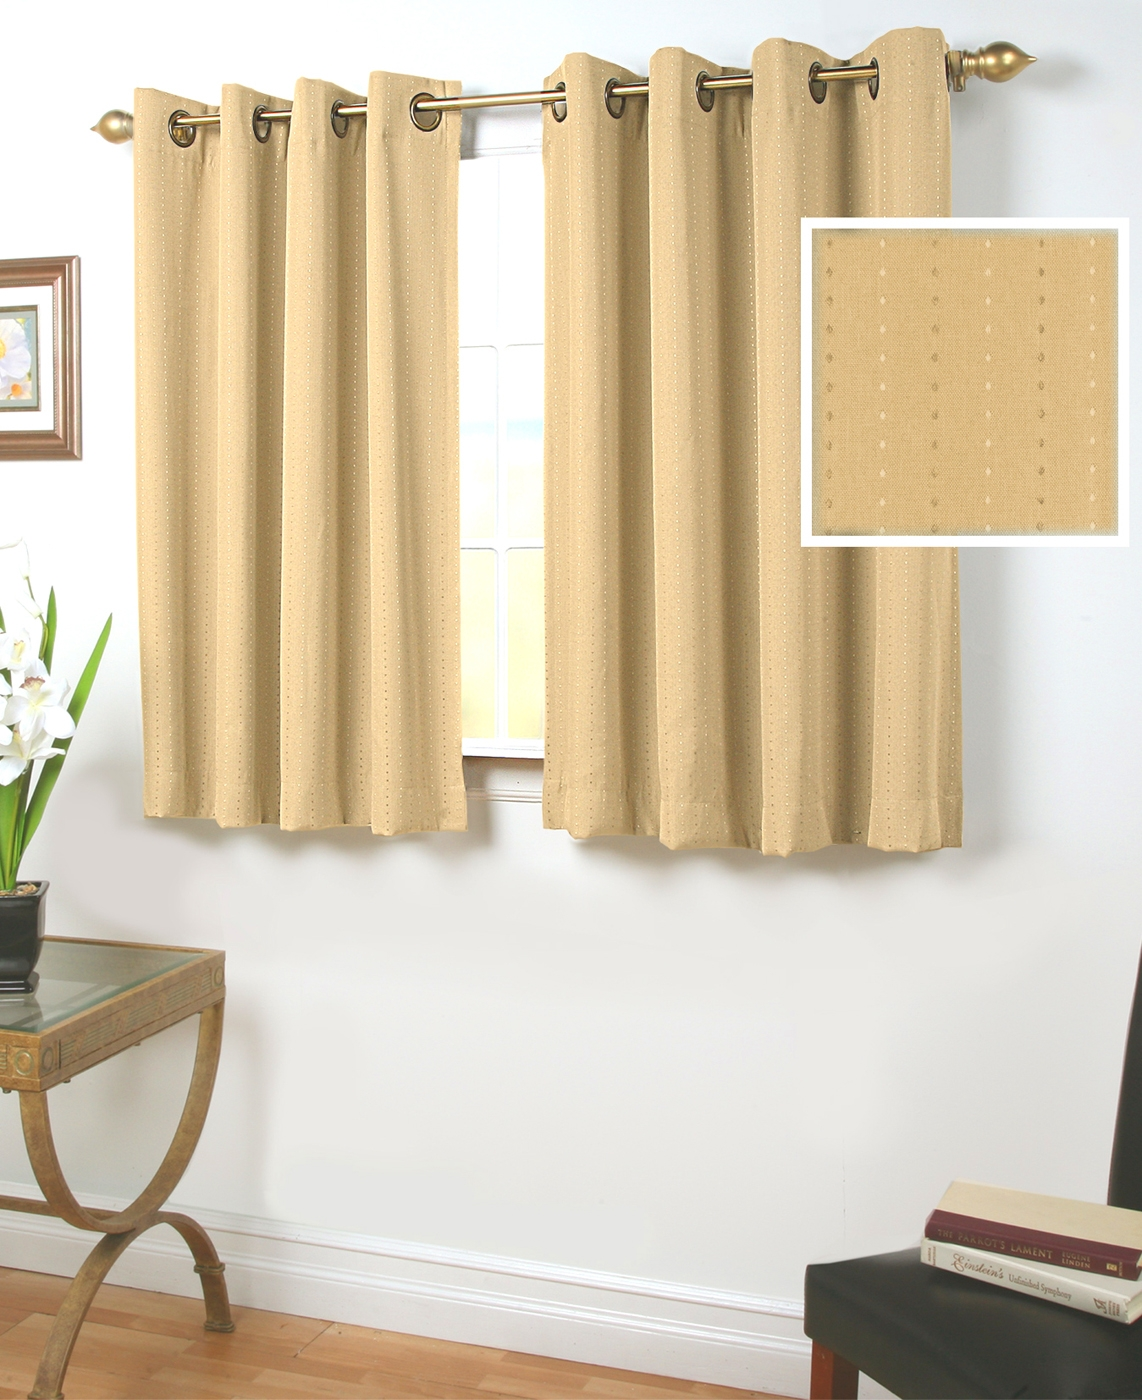 45 Inch Long Curtains Thecurtainshop For 54 Inch Long Curtain Panels (View 8 of 25)